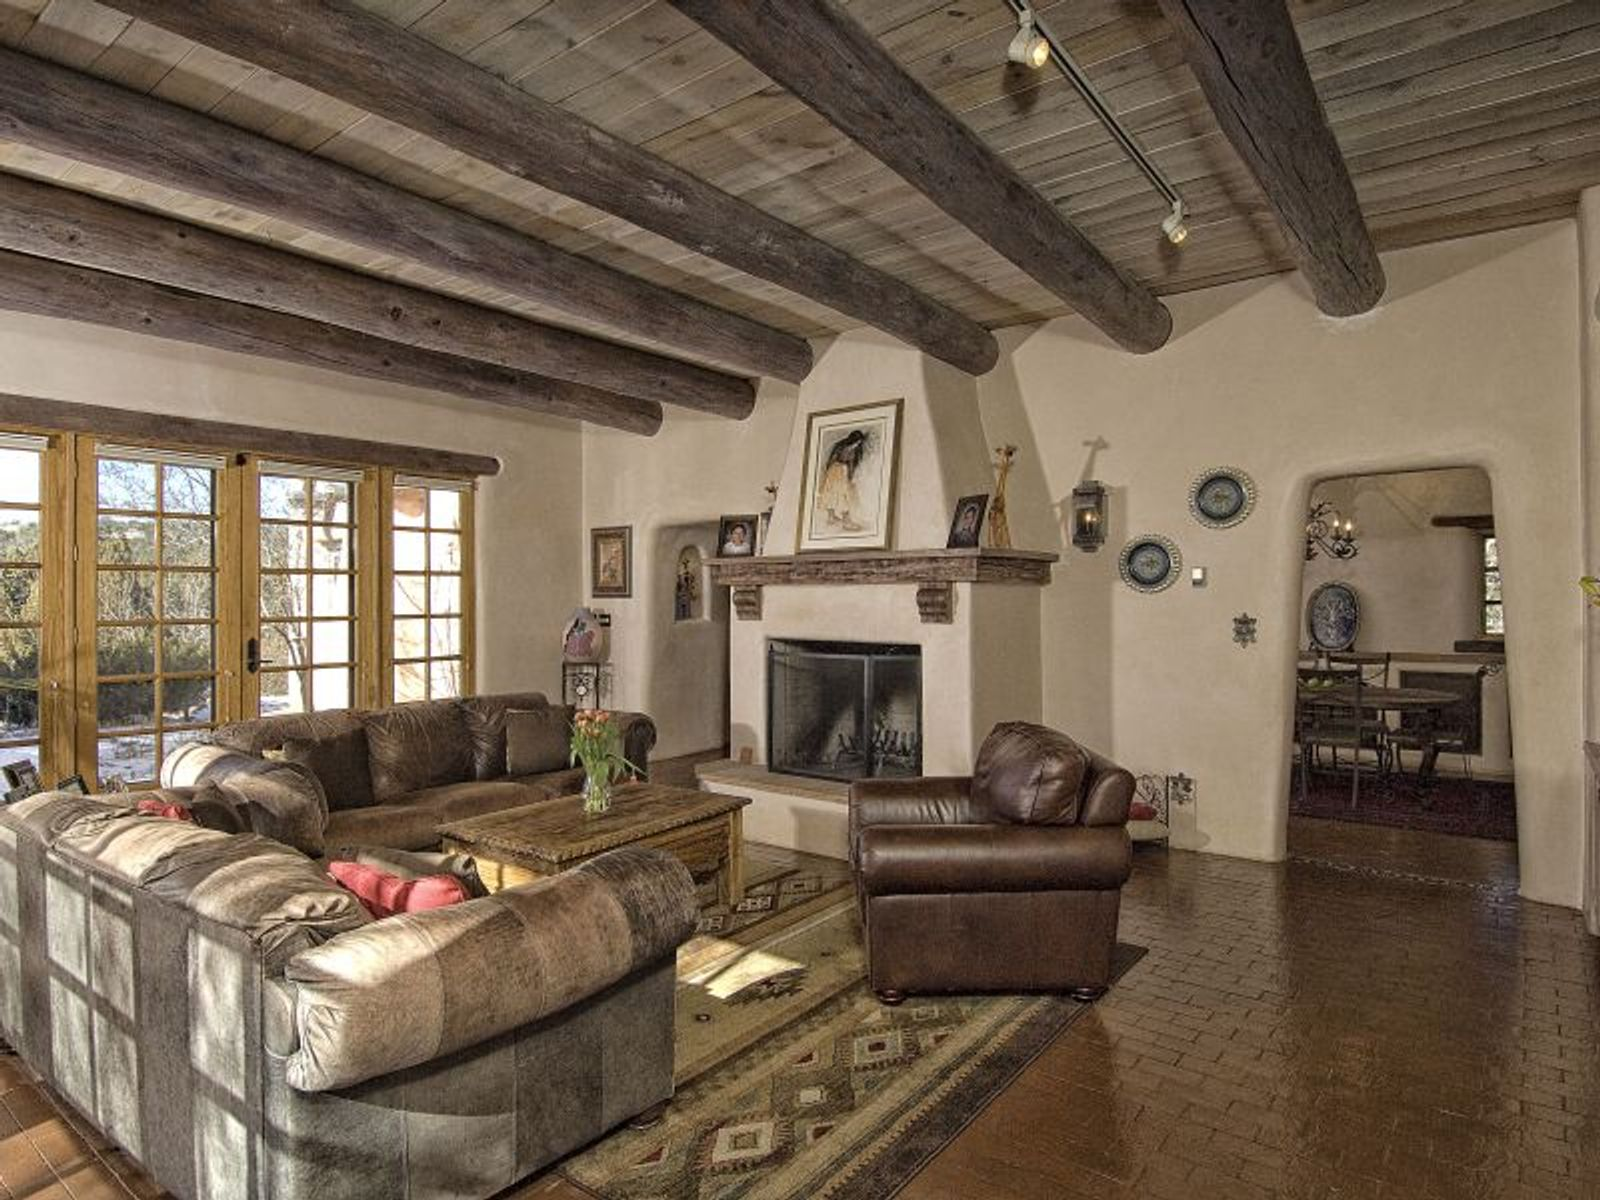 10 Miners Trail, Santa Fe NM Single Family Home - Santa Fe Real Estate